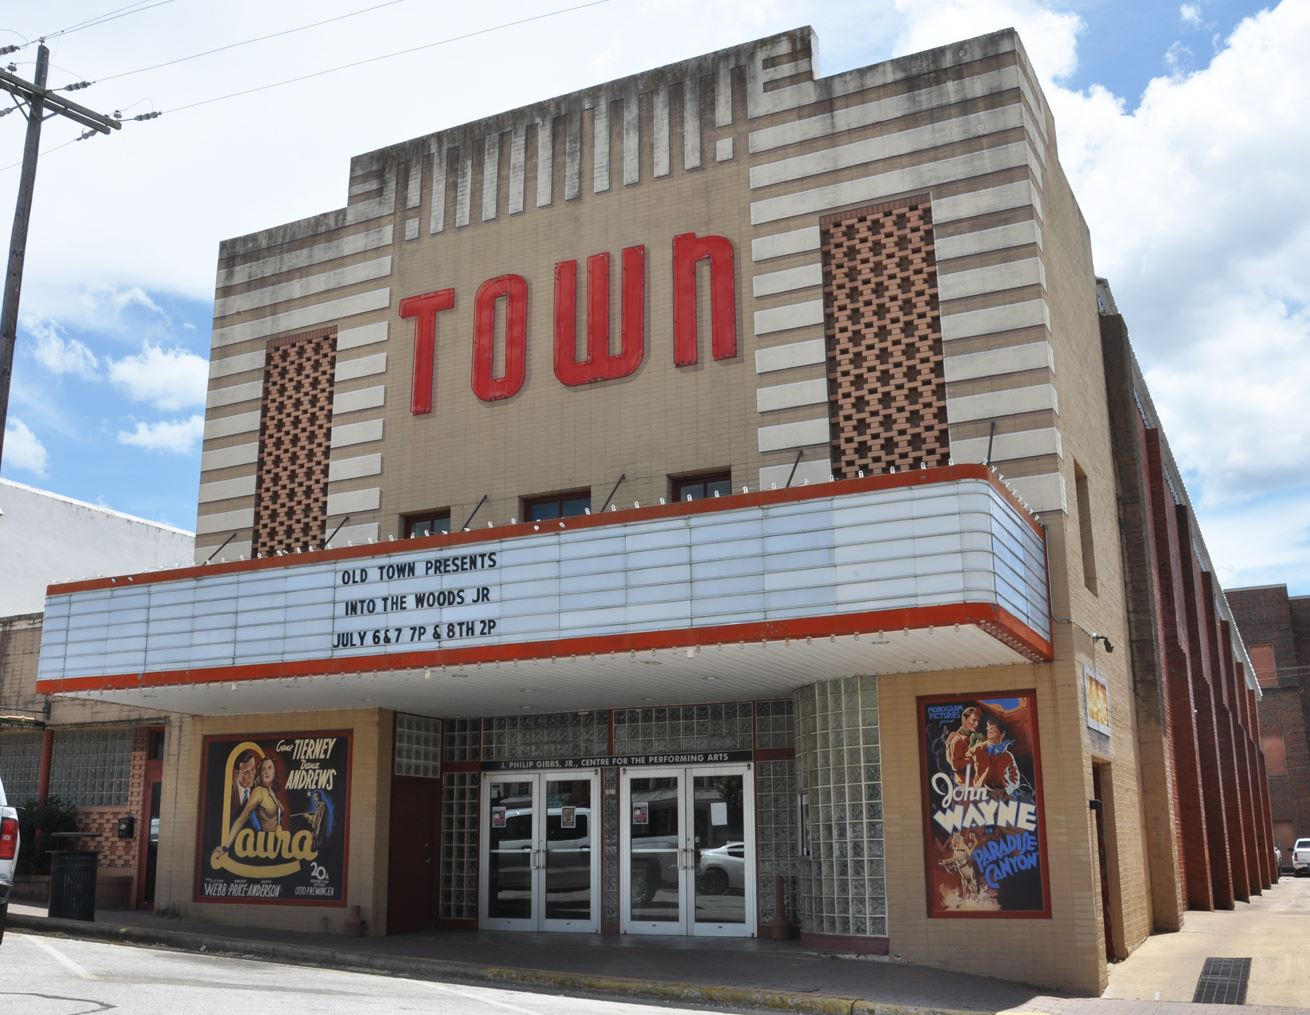 Old Town Theatre